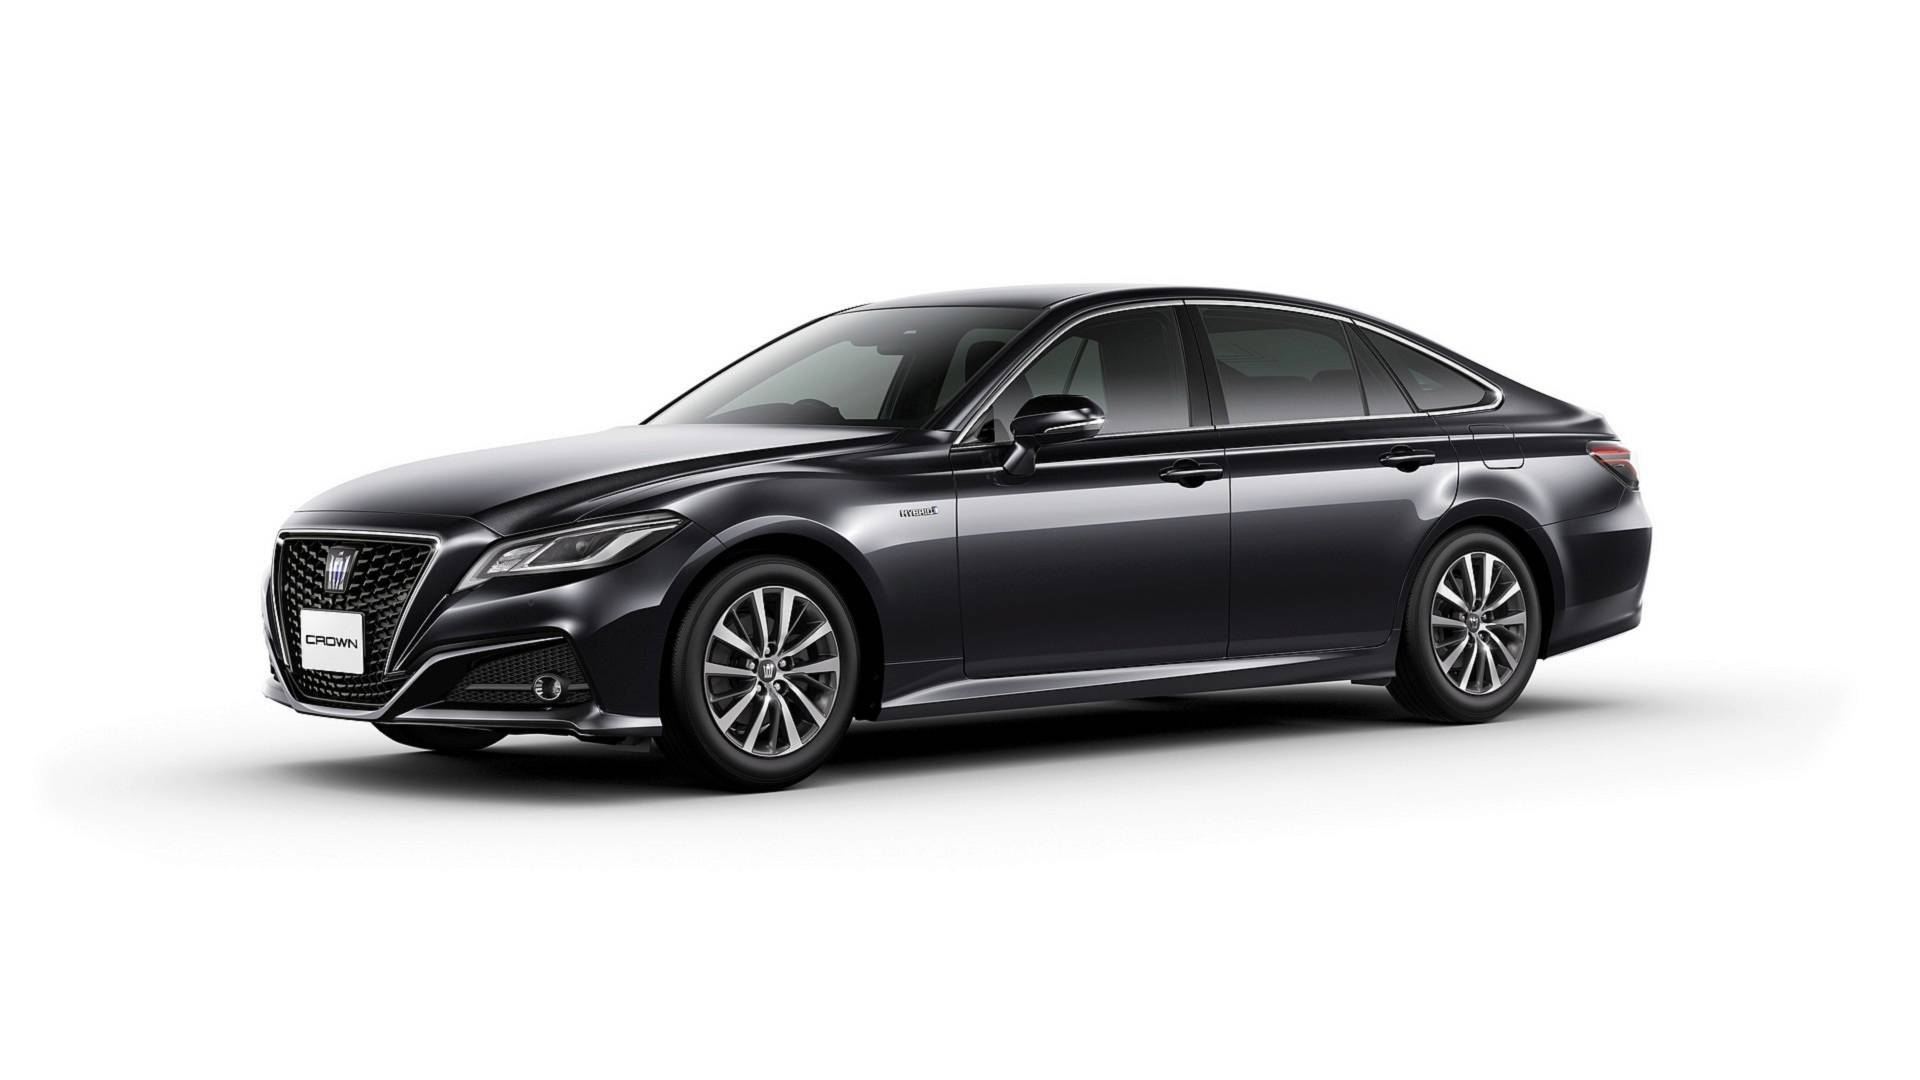 2018_Toyota_Crown_05